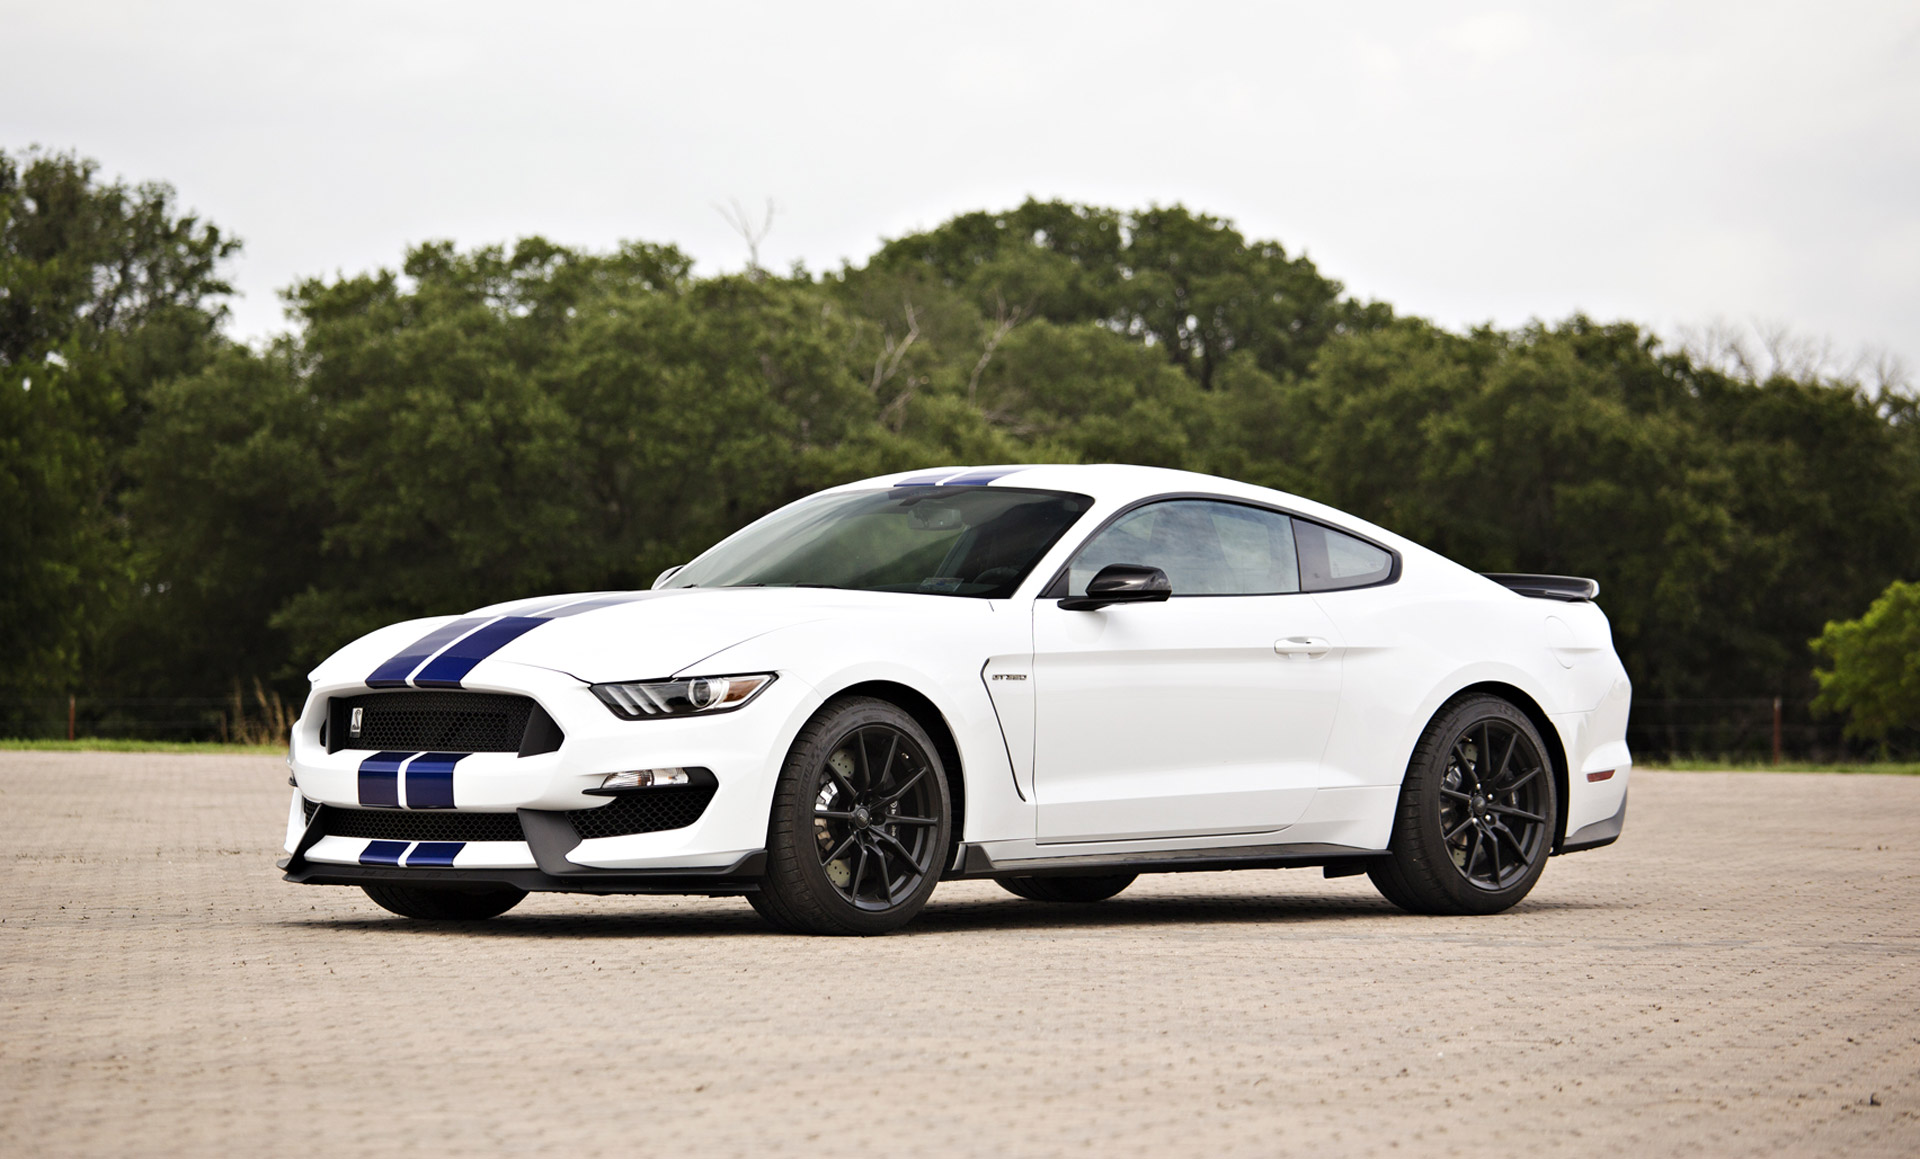 Ford Mustang Shelby Gt350 Signed By George W Bush Helps